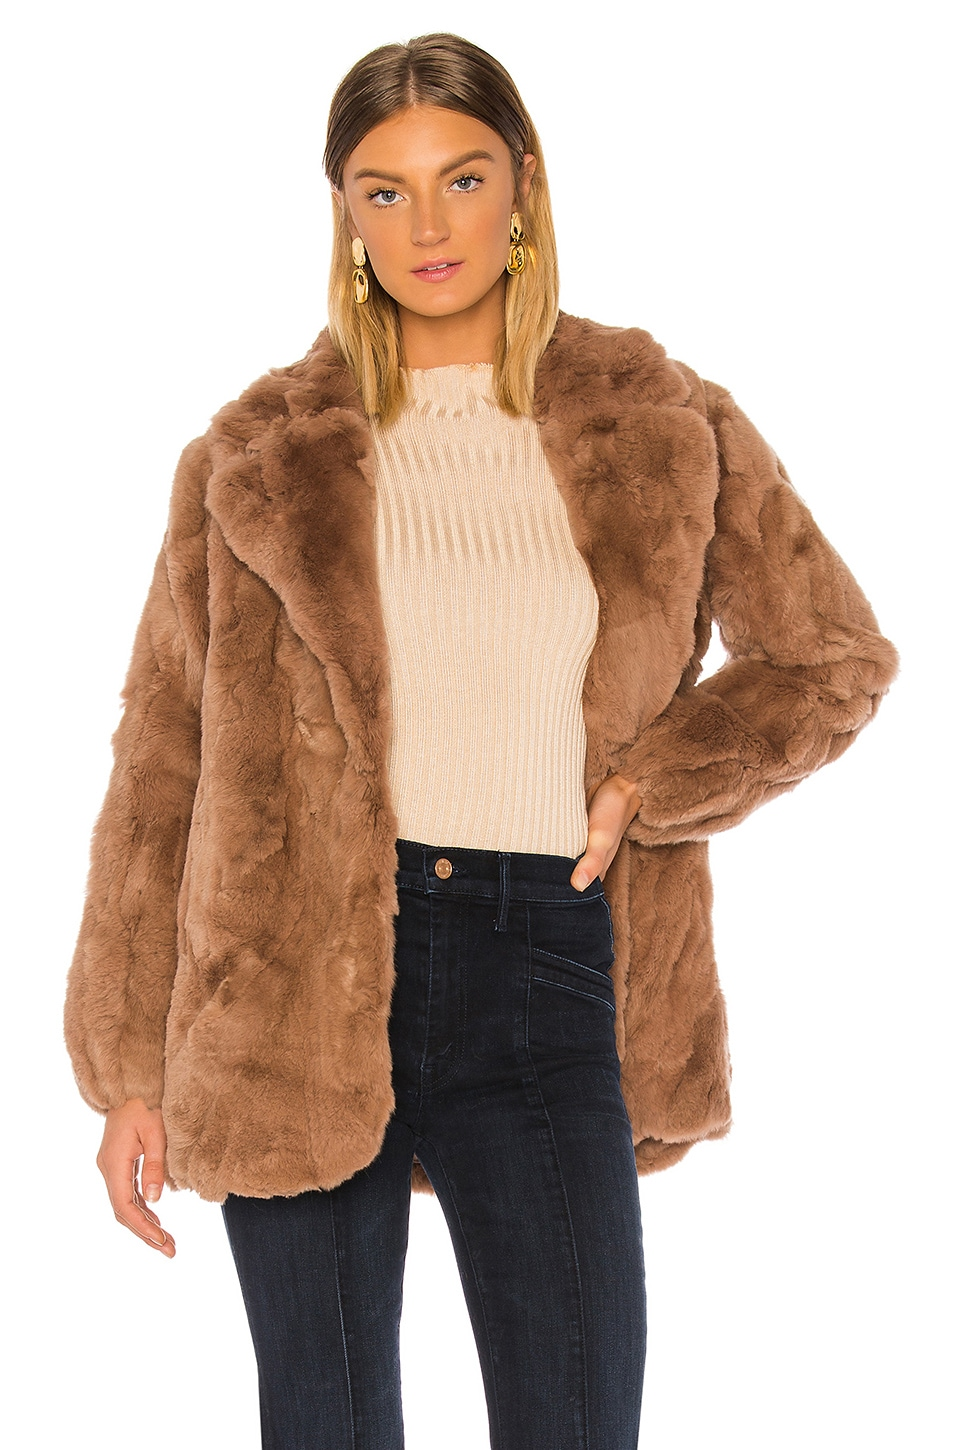 HEARTLOOM Luna Fur Coat in Toffee